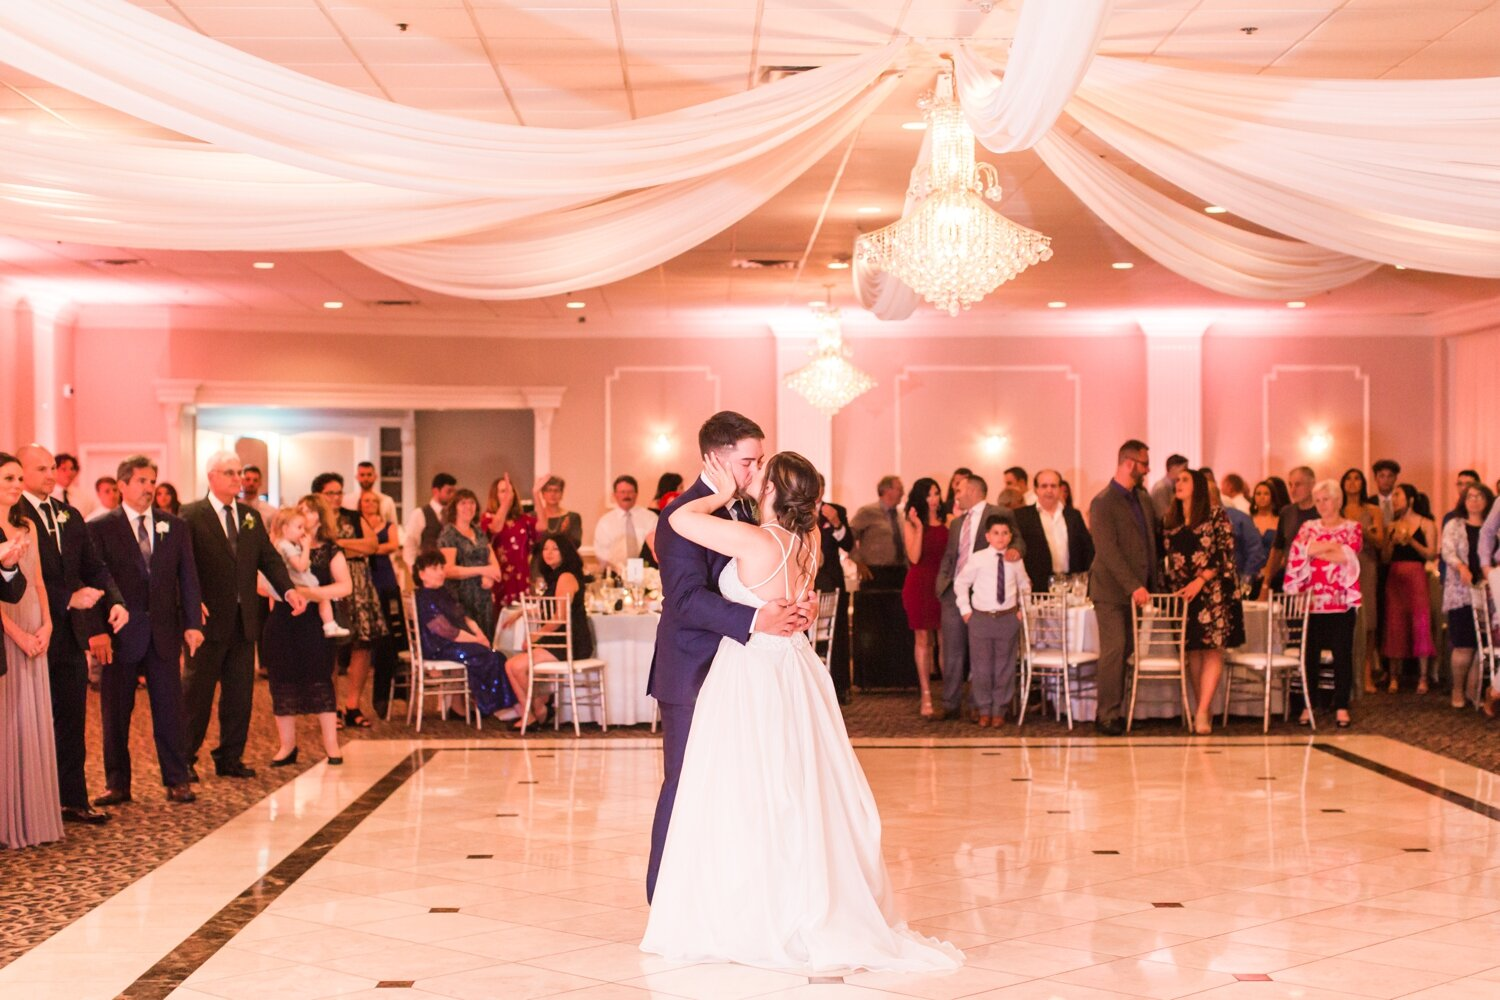 la-bella-vista-wedding-waterbury-connecticut-photographer-shaina-lee-photography-photo